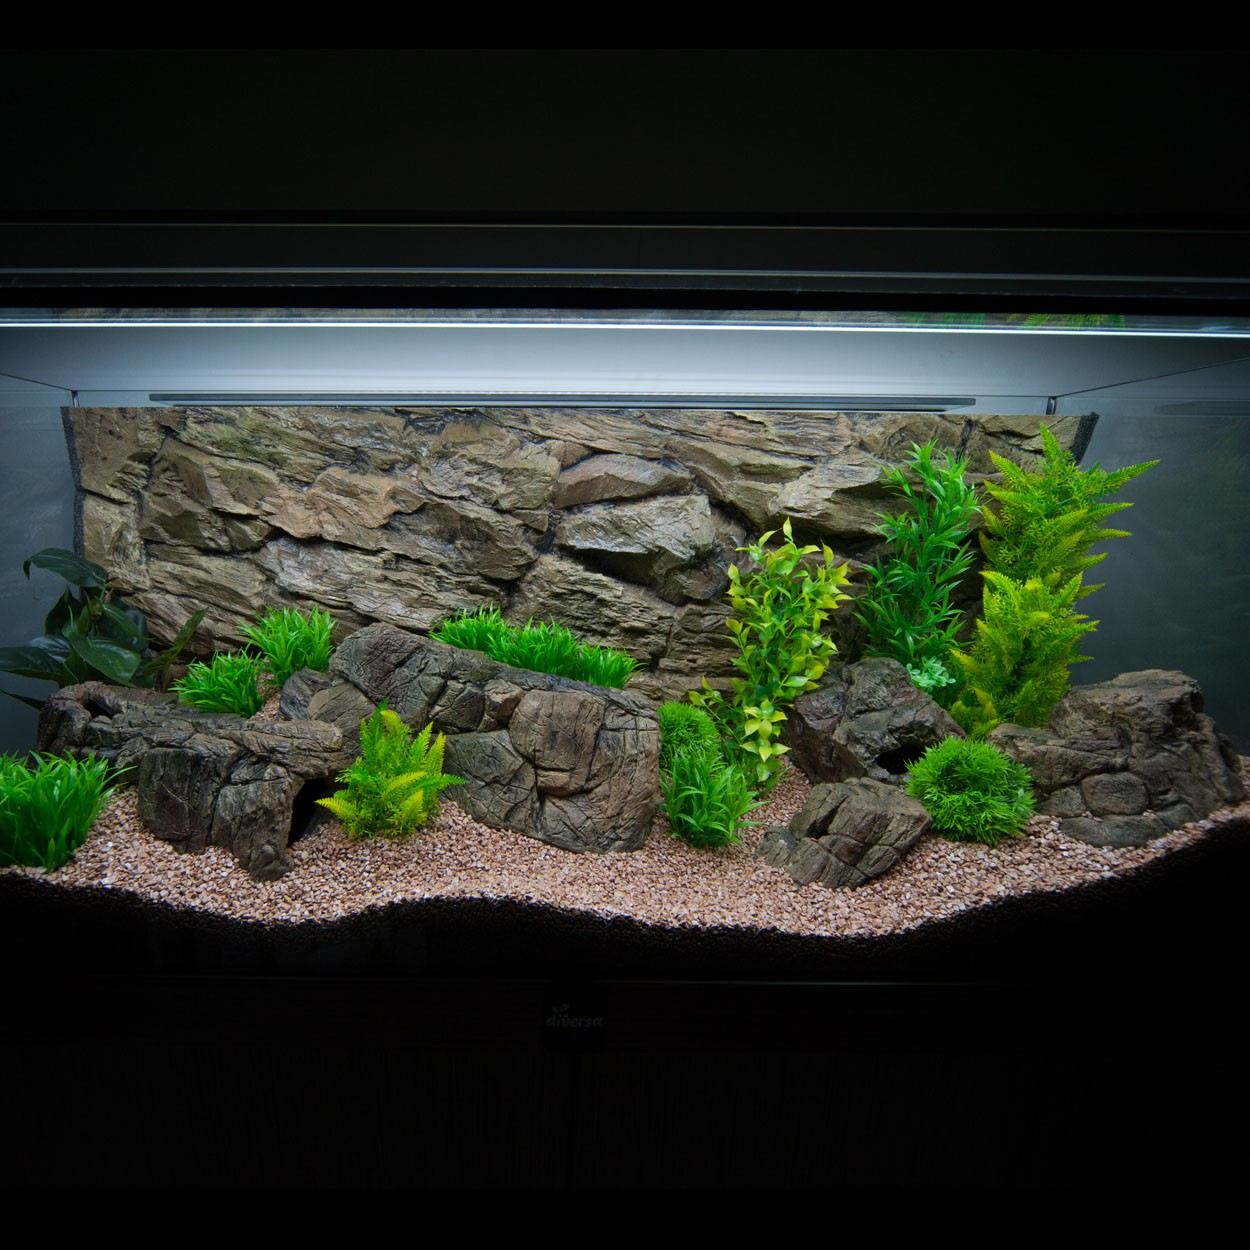 3d aquarium r ckwand f r vision 180 s line aquaristik welt. Black Bedroom Furniture Sets. Home Design Ideas